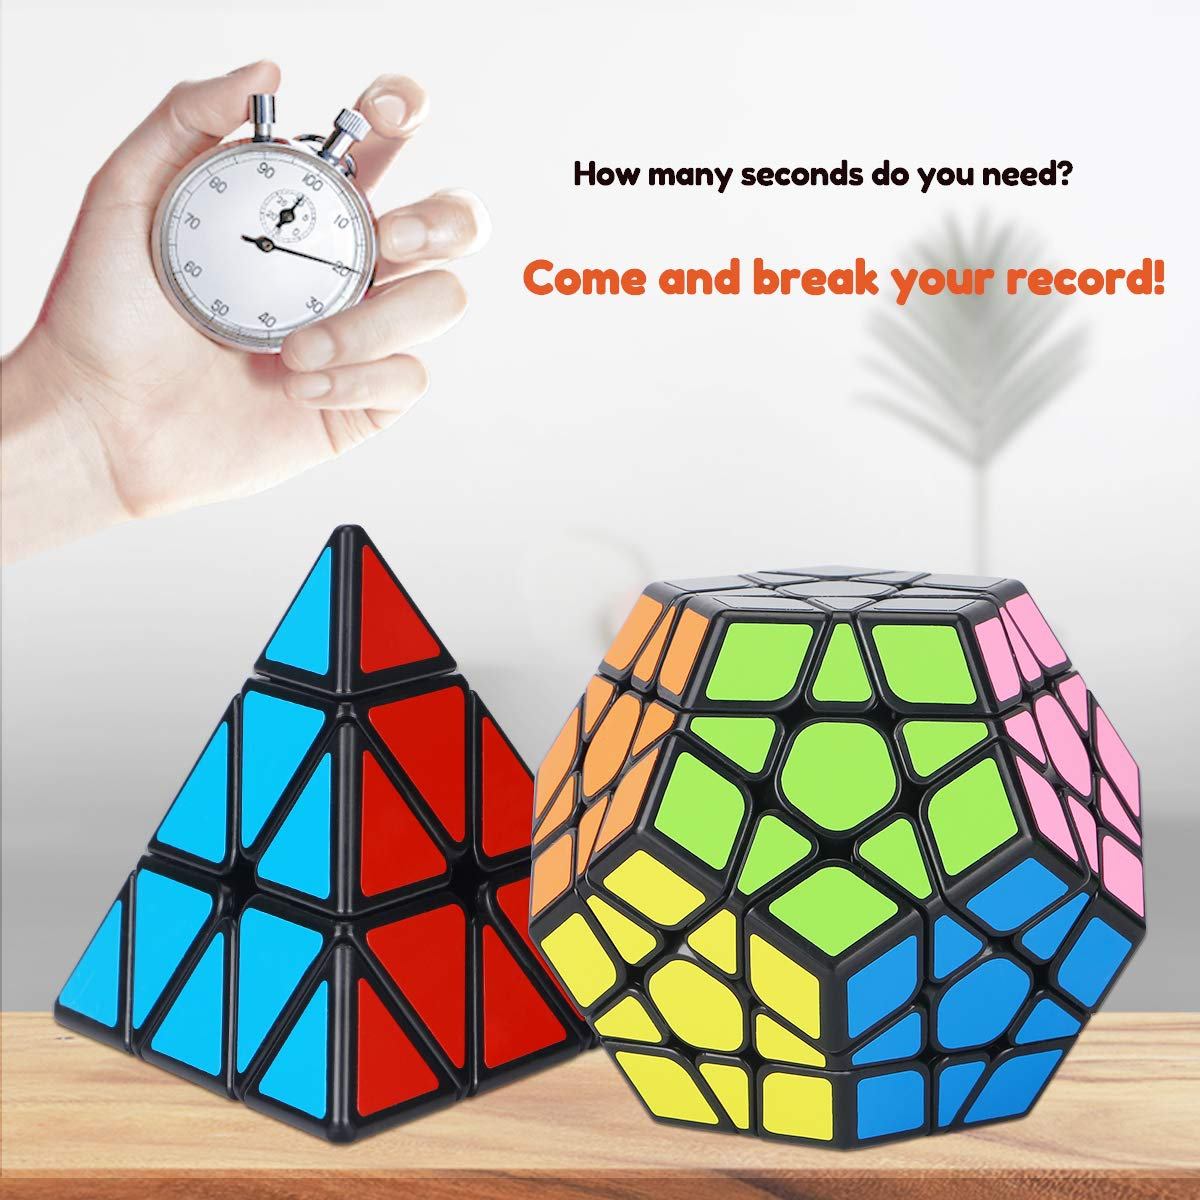 Aiduy Speed Cube Set, Smooth Magic Cube Bundle 2x2 3x3 4x4 Pyramid Megaminx Skew Mirror Ivy Stickerless Cube Puzzle, 3D Puzzles Cube for Kids and Adults Set of 8